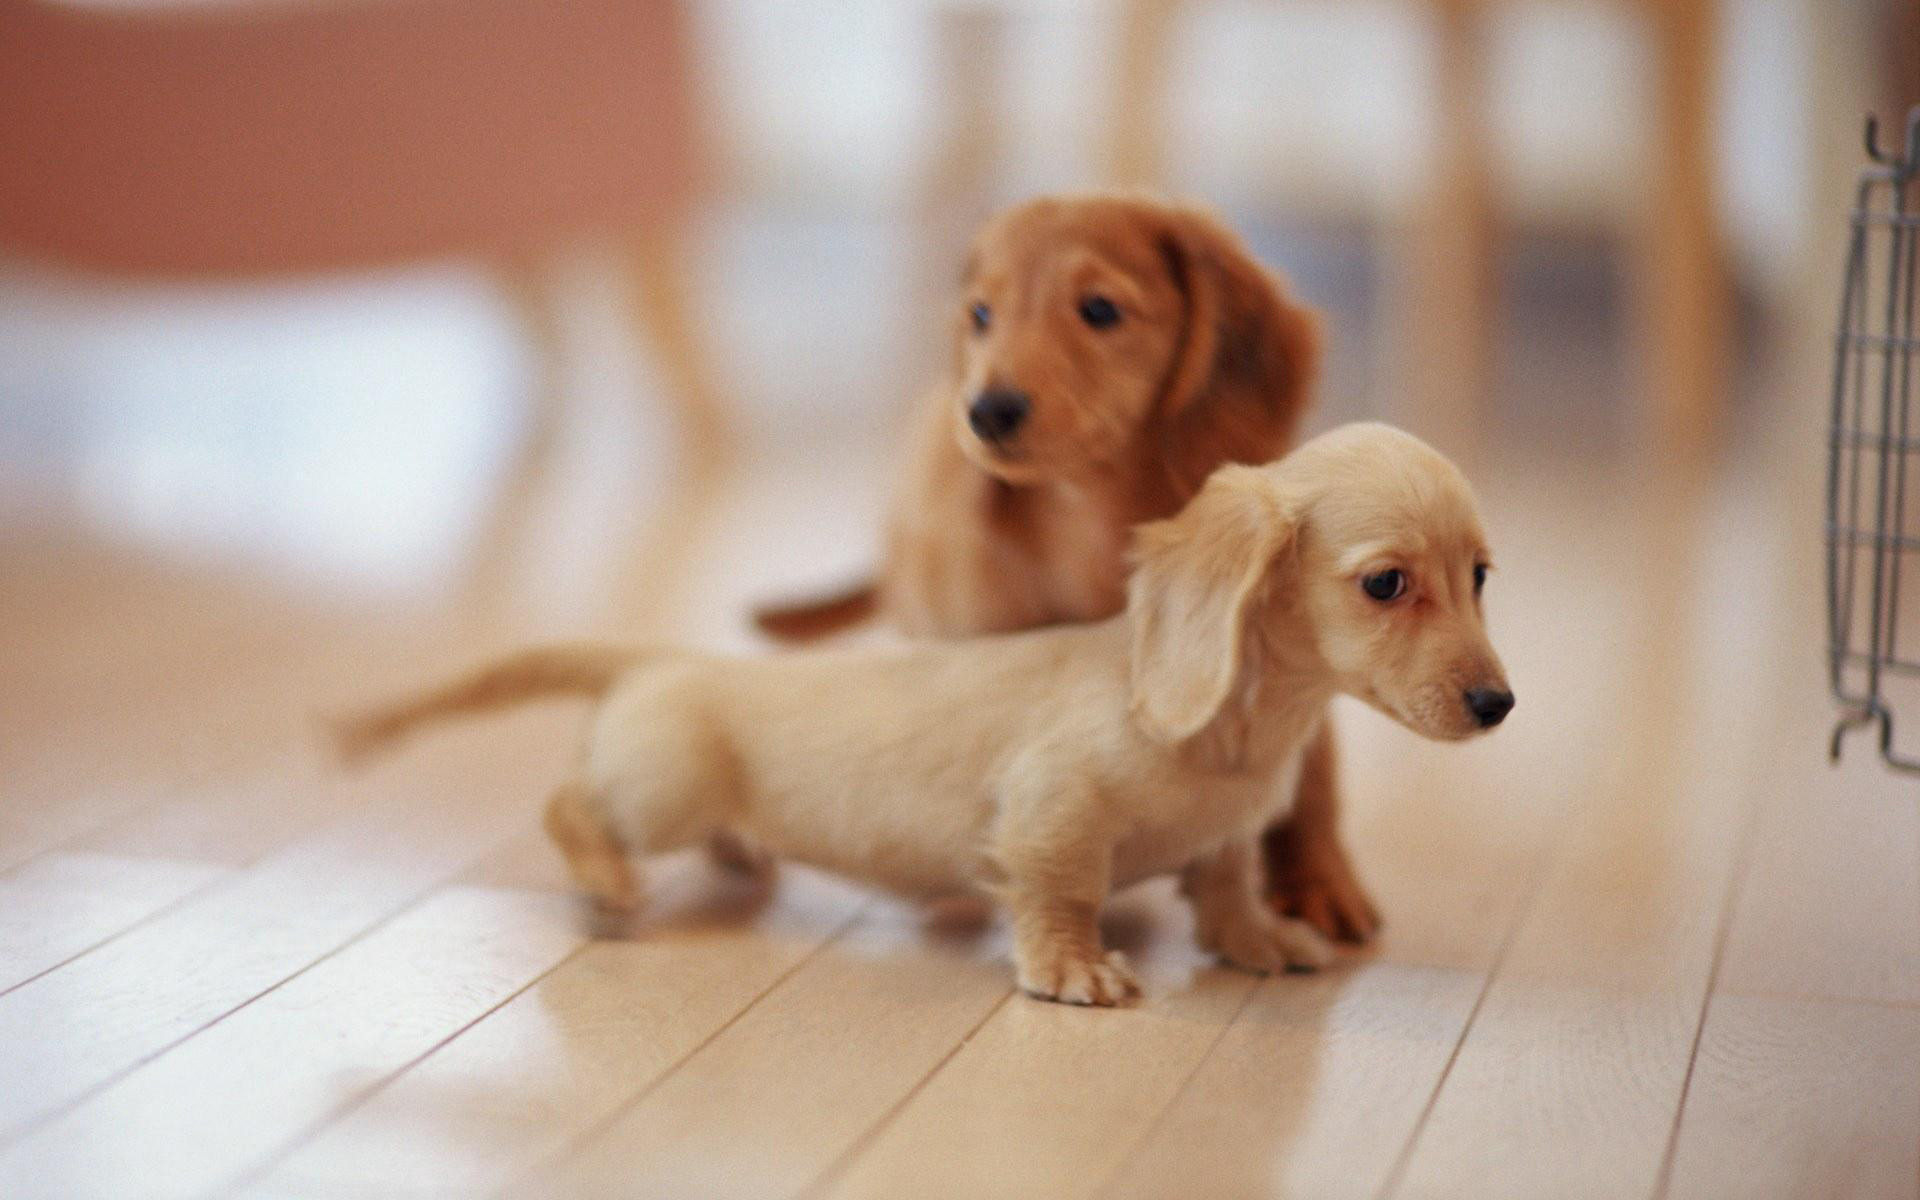 Cute Puppies Hd Pictures And Wallpapers   ImgStocks.com